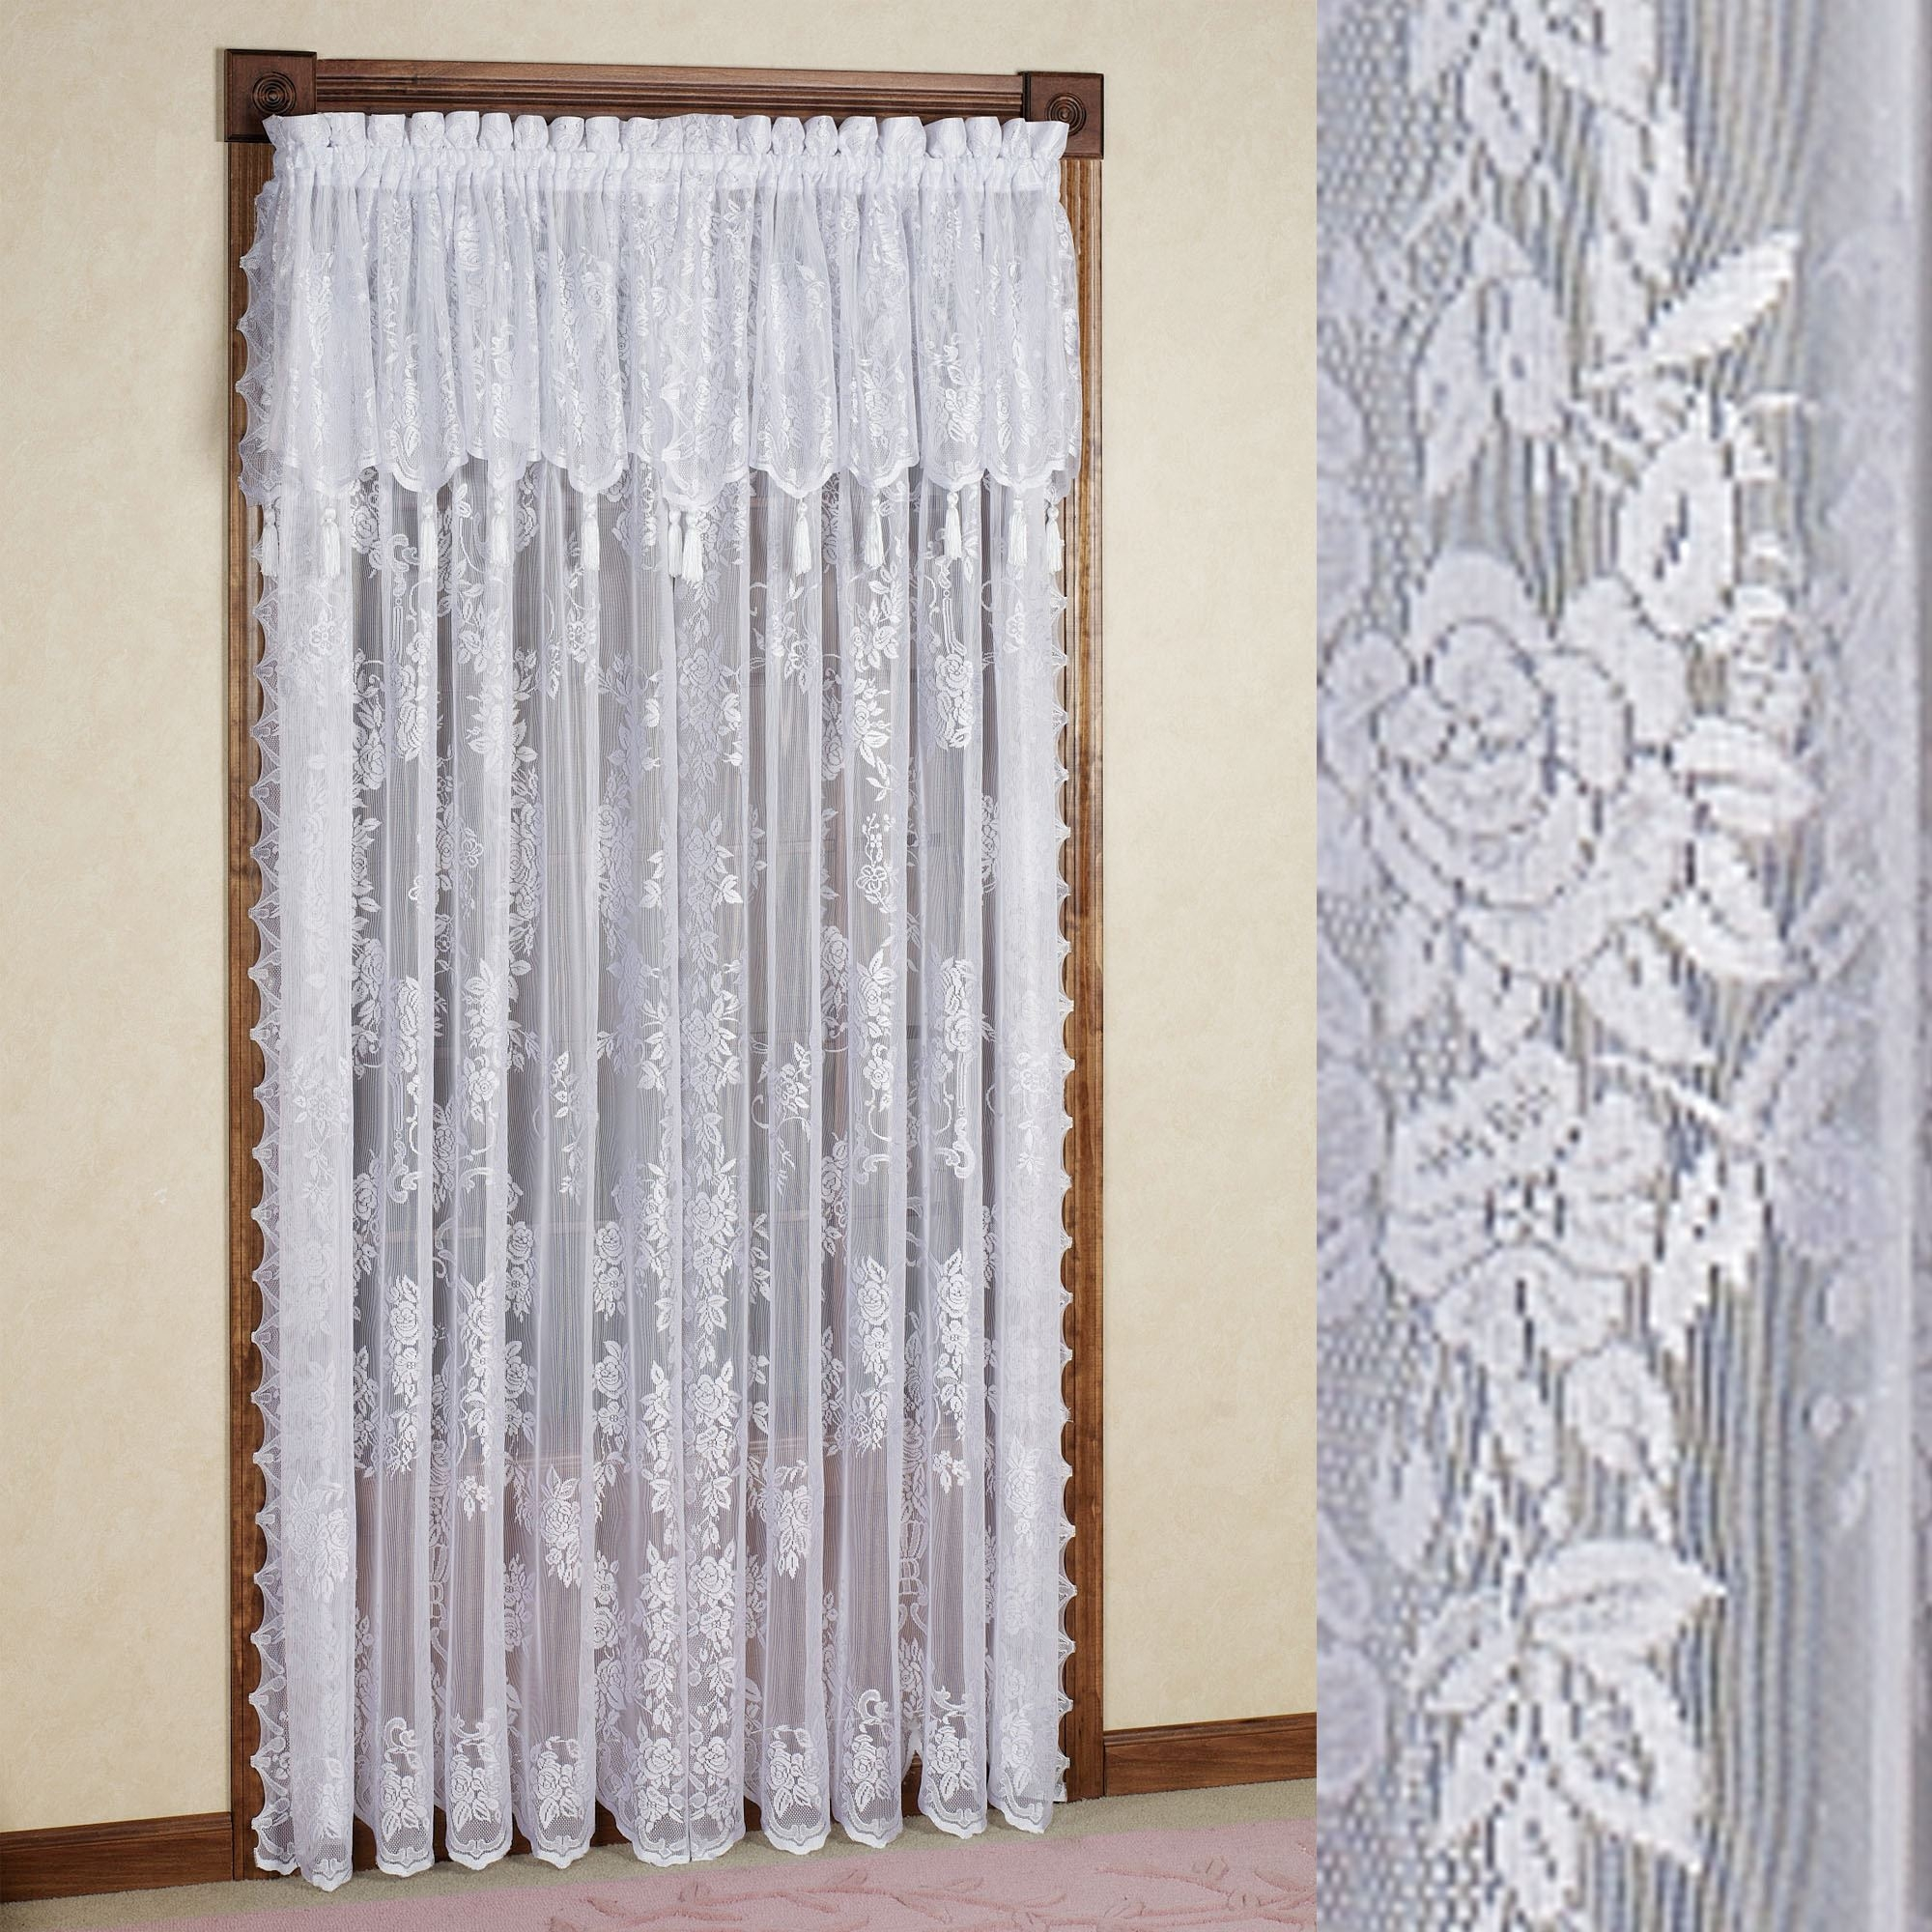 Easy Style Carly Lace Curtain Panel With Attached Valance Within Lace Curtain Sets (View 6 of 25)